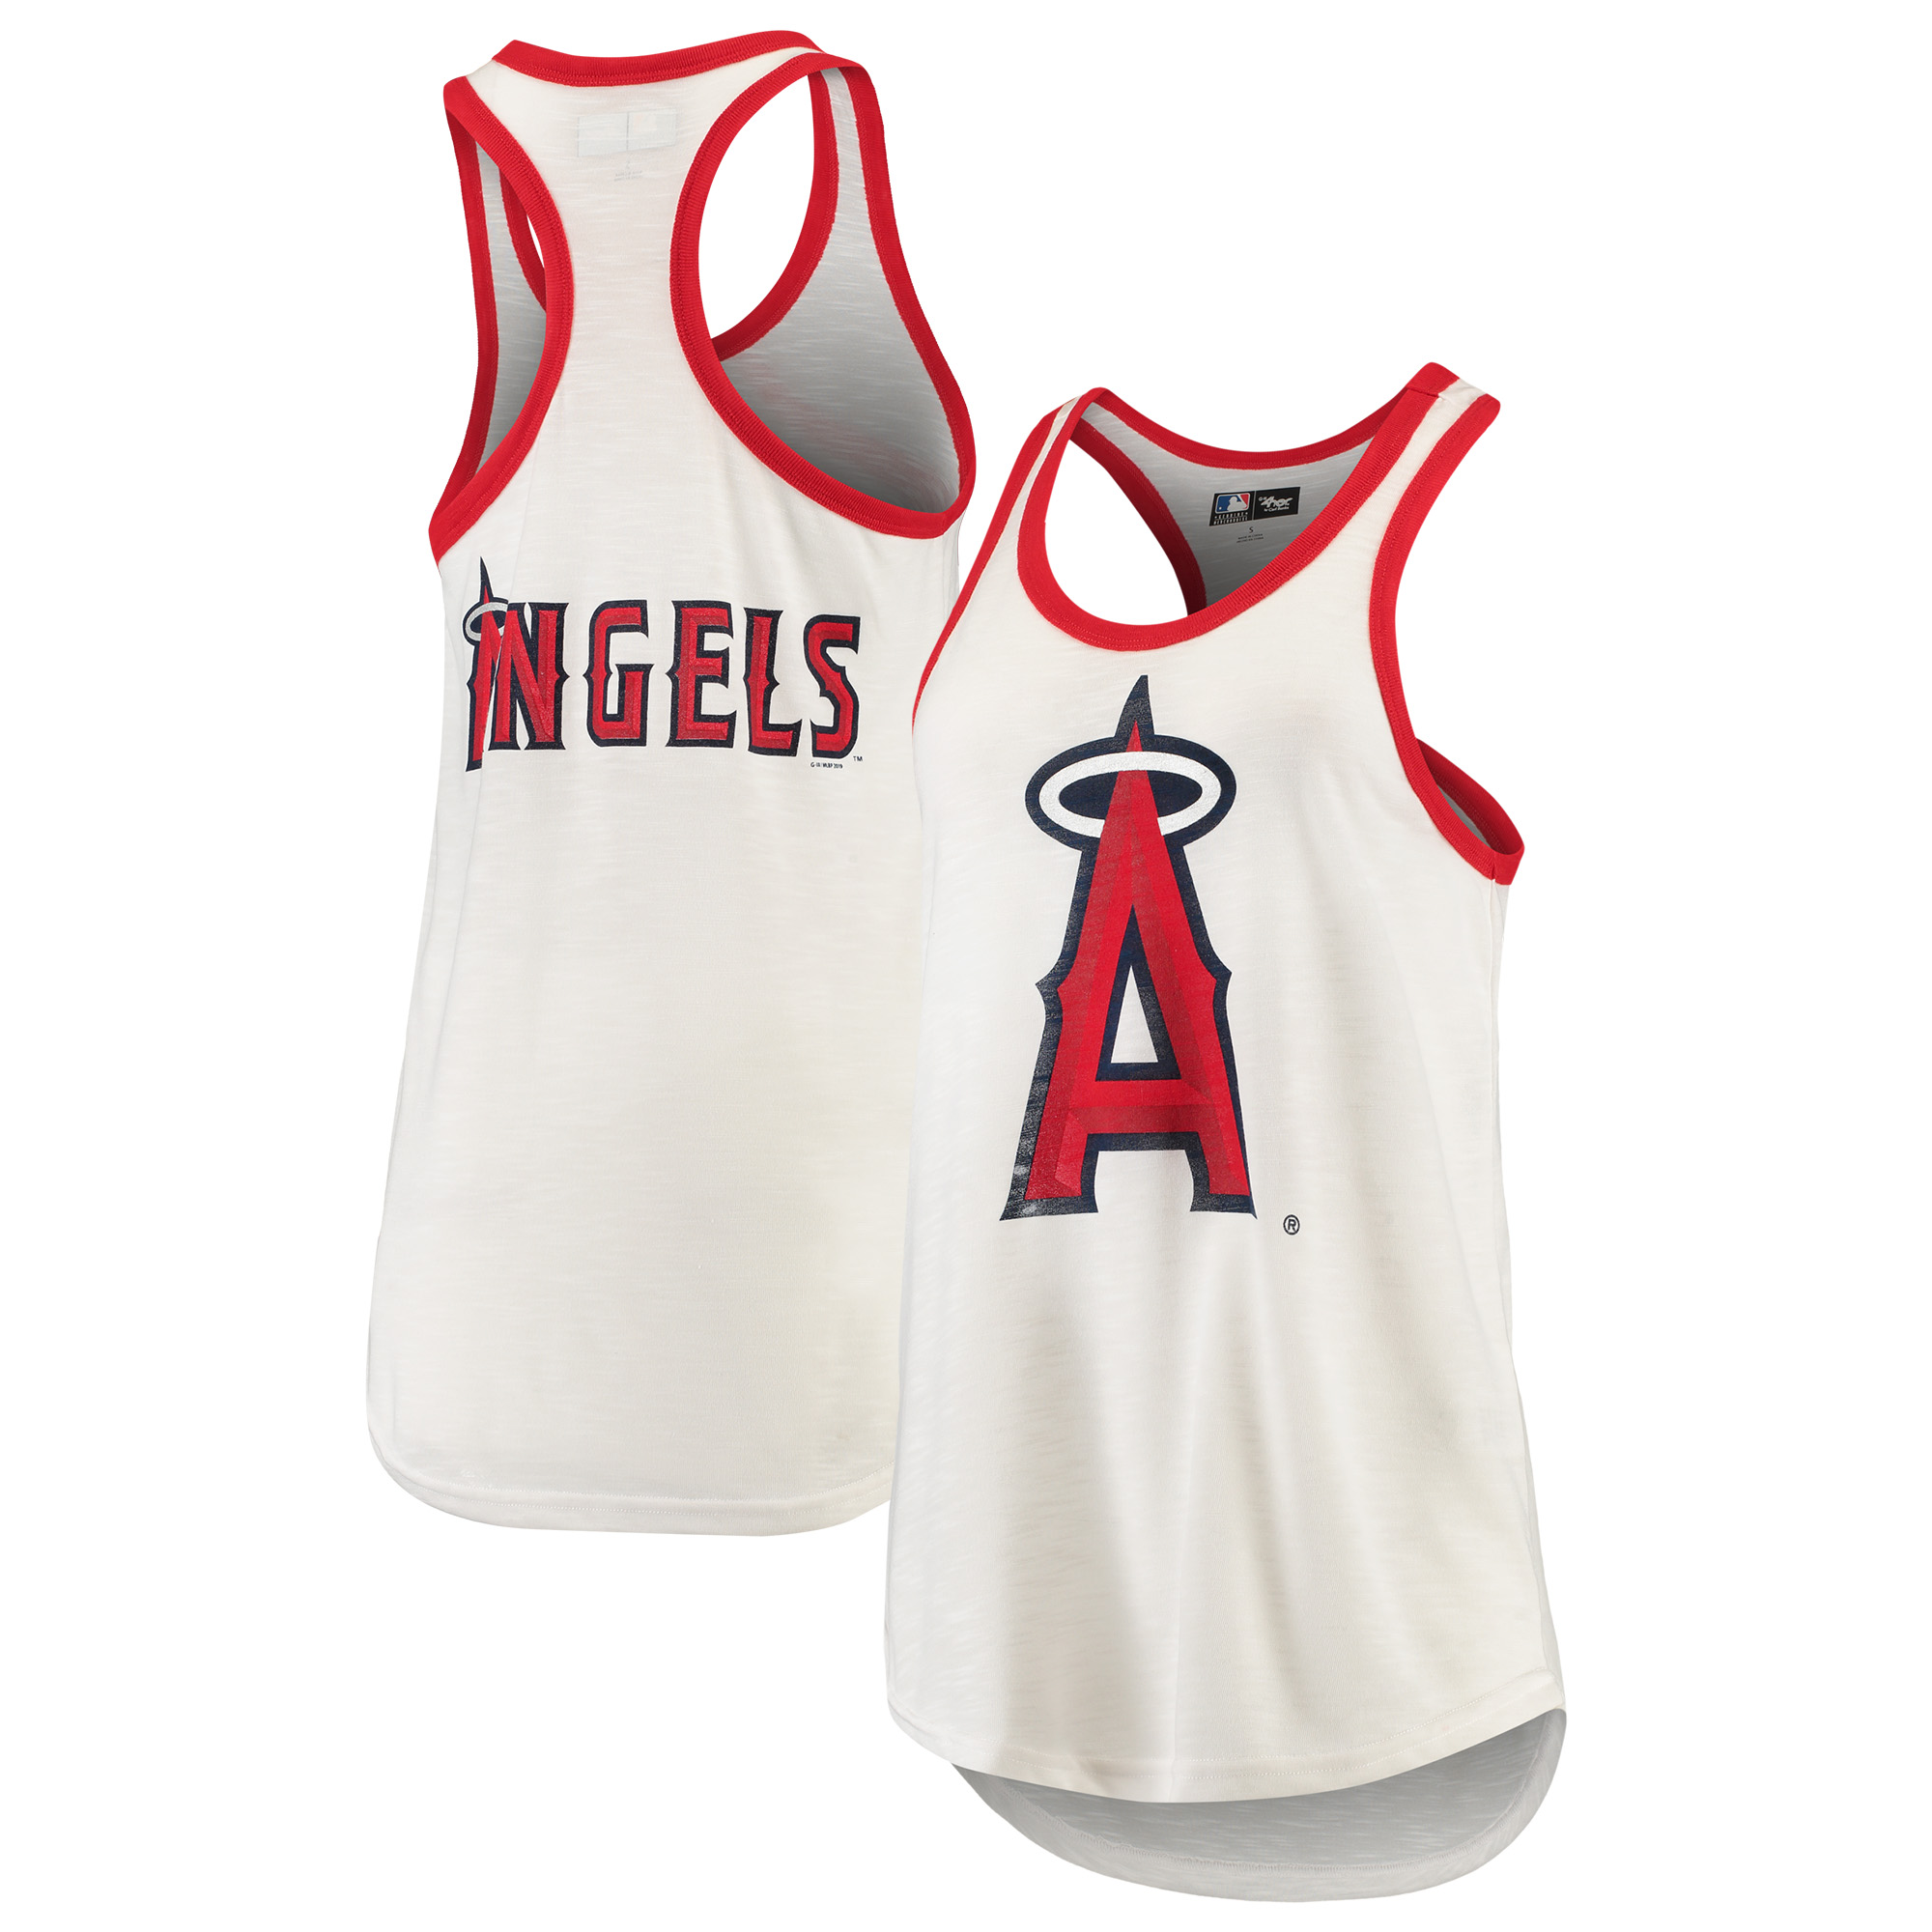 Los Angeles Angels G-III 4Her by Carl Banks Women's Tater Racerback Tank Top - White